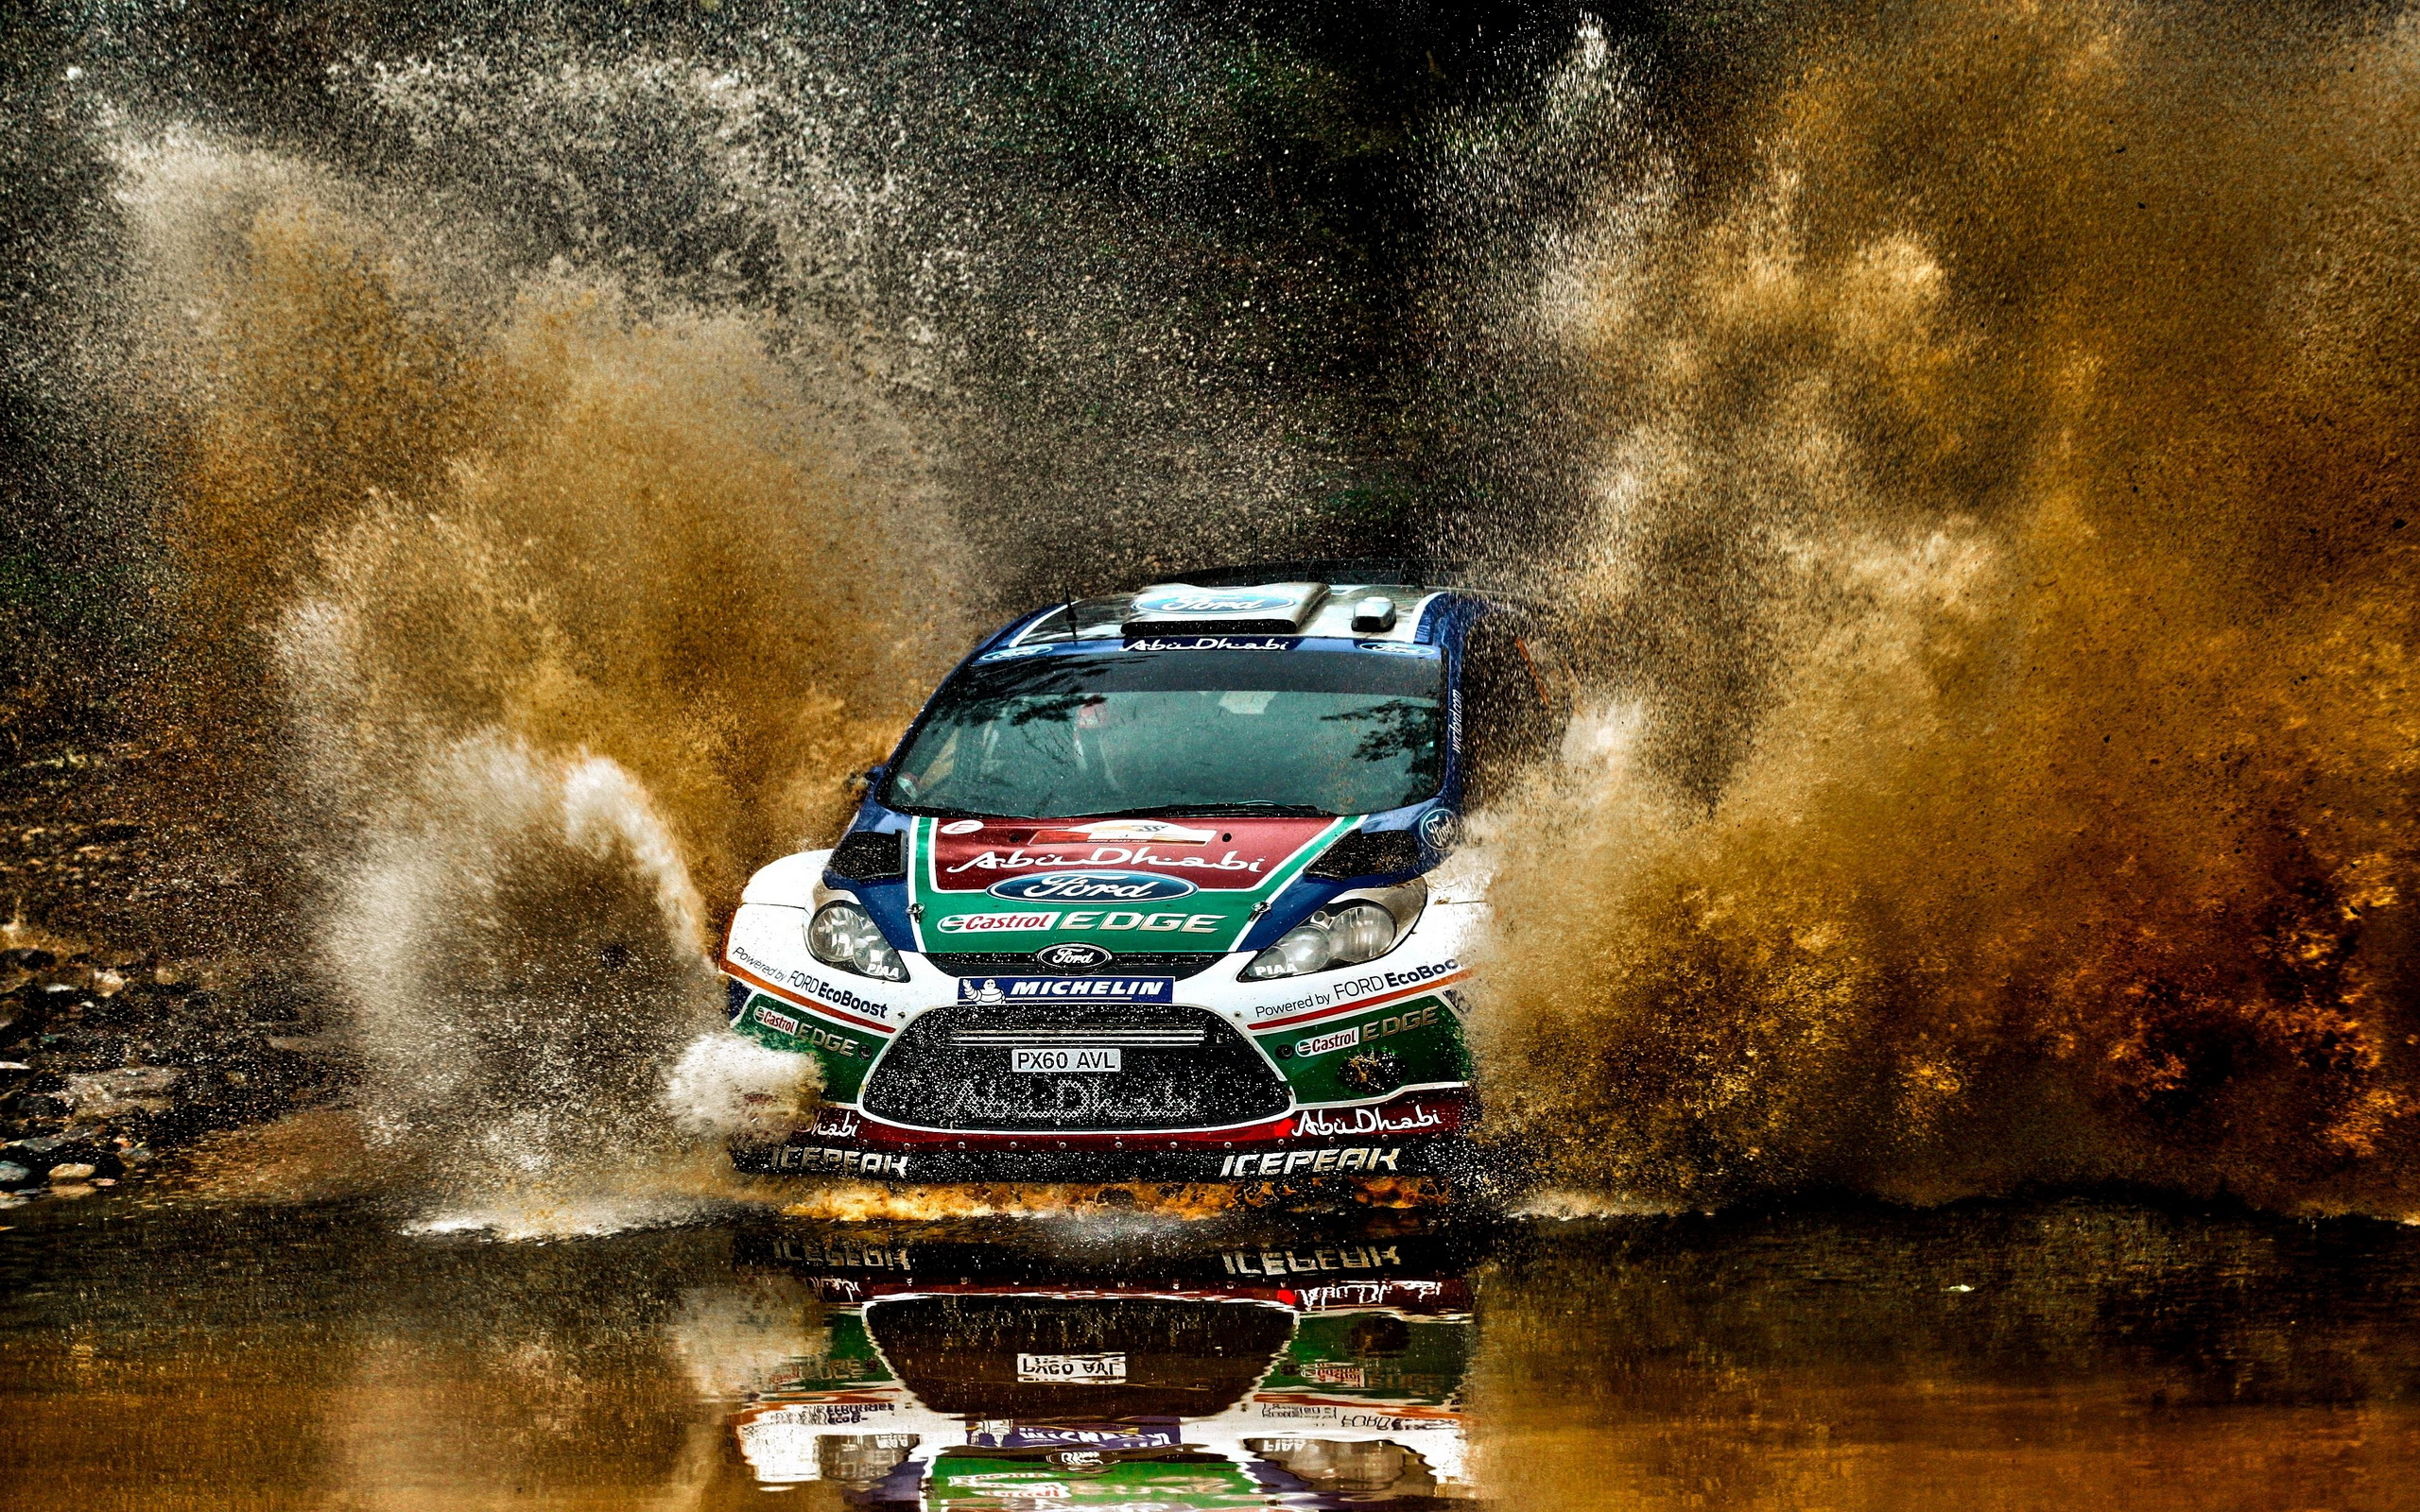 Rally Cars Res: 2560x1600 / Size:2311kb. Views: 32769